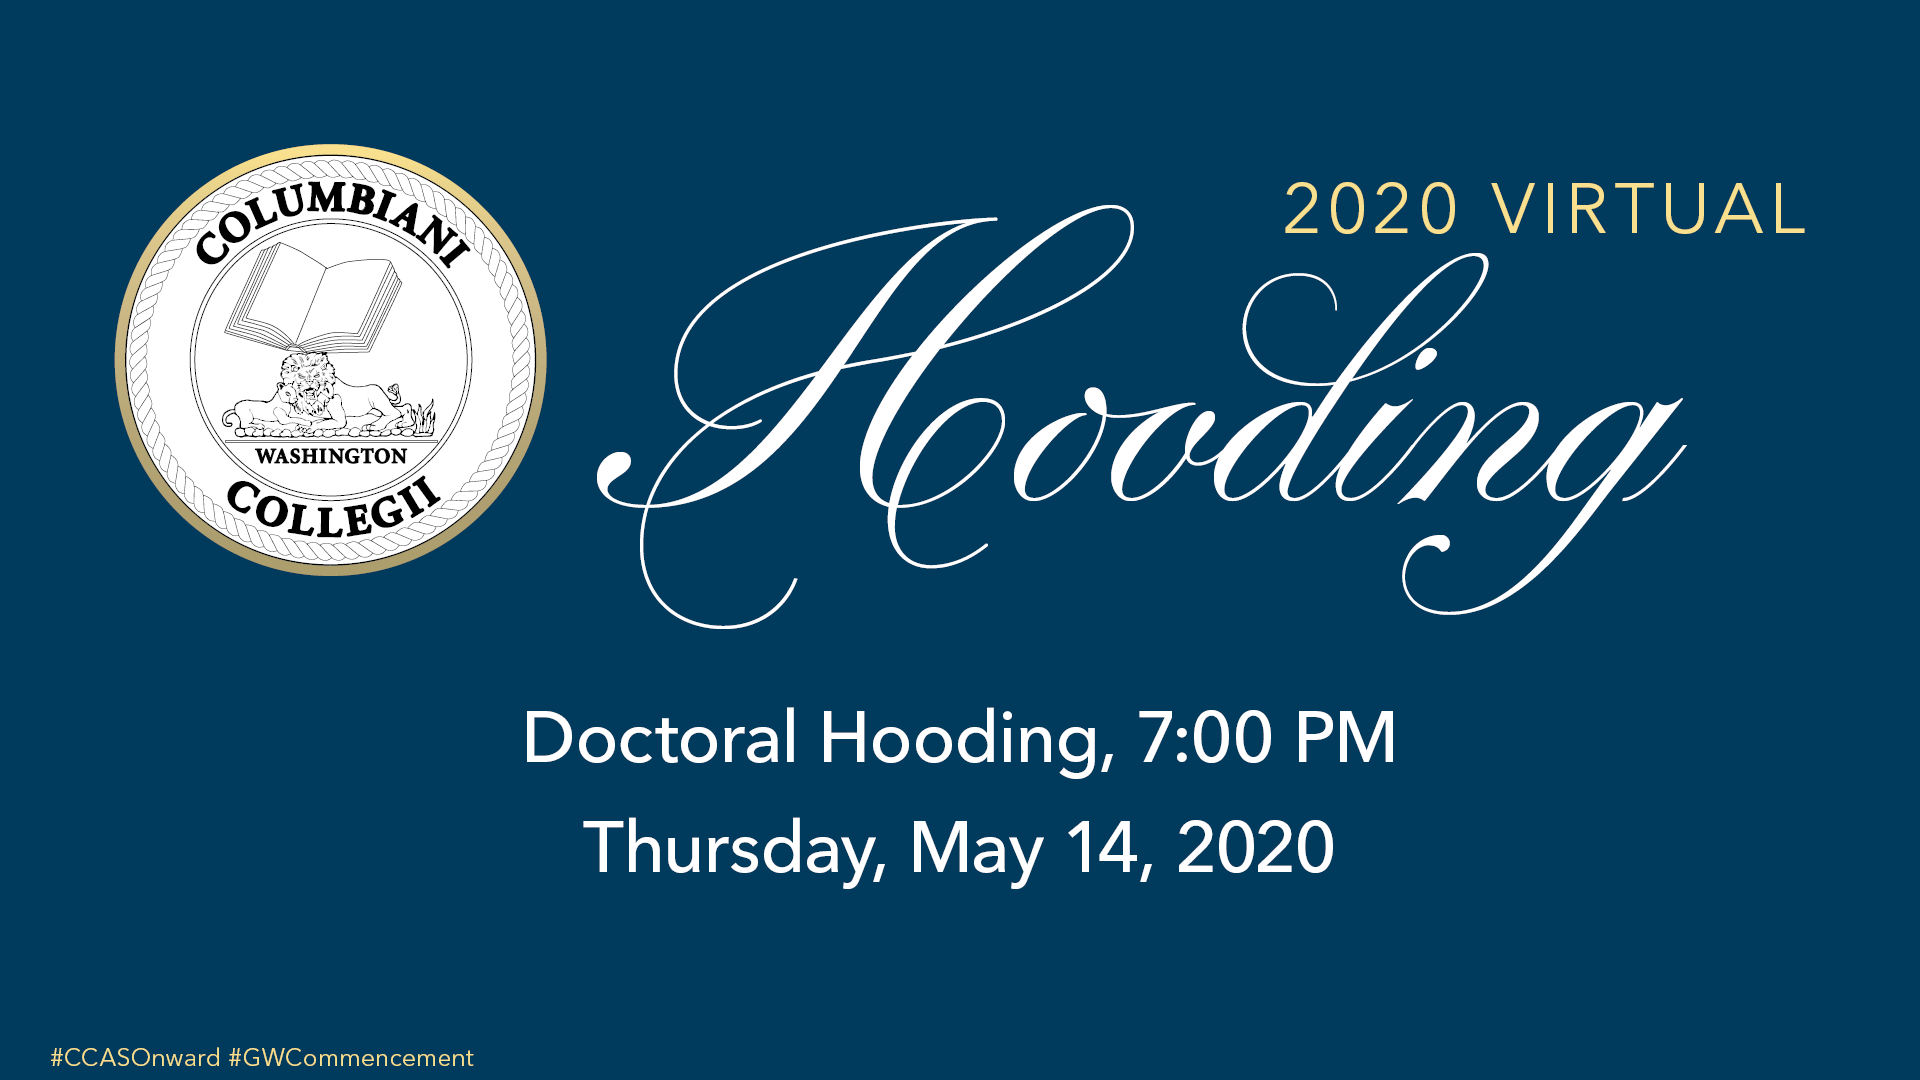 2020 Columbian College Celebration Doctoral Hooding ceremony